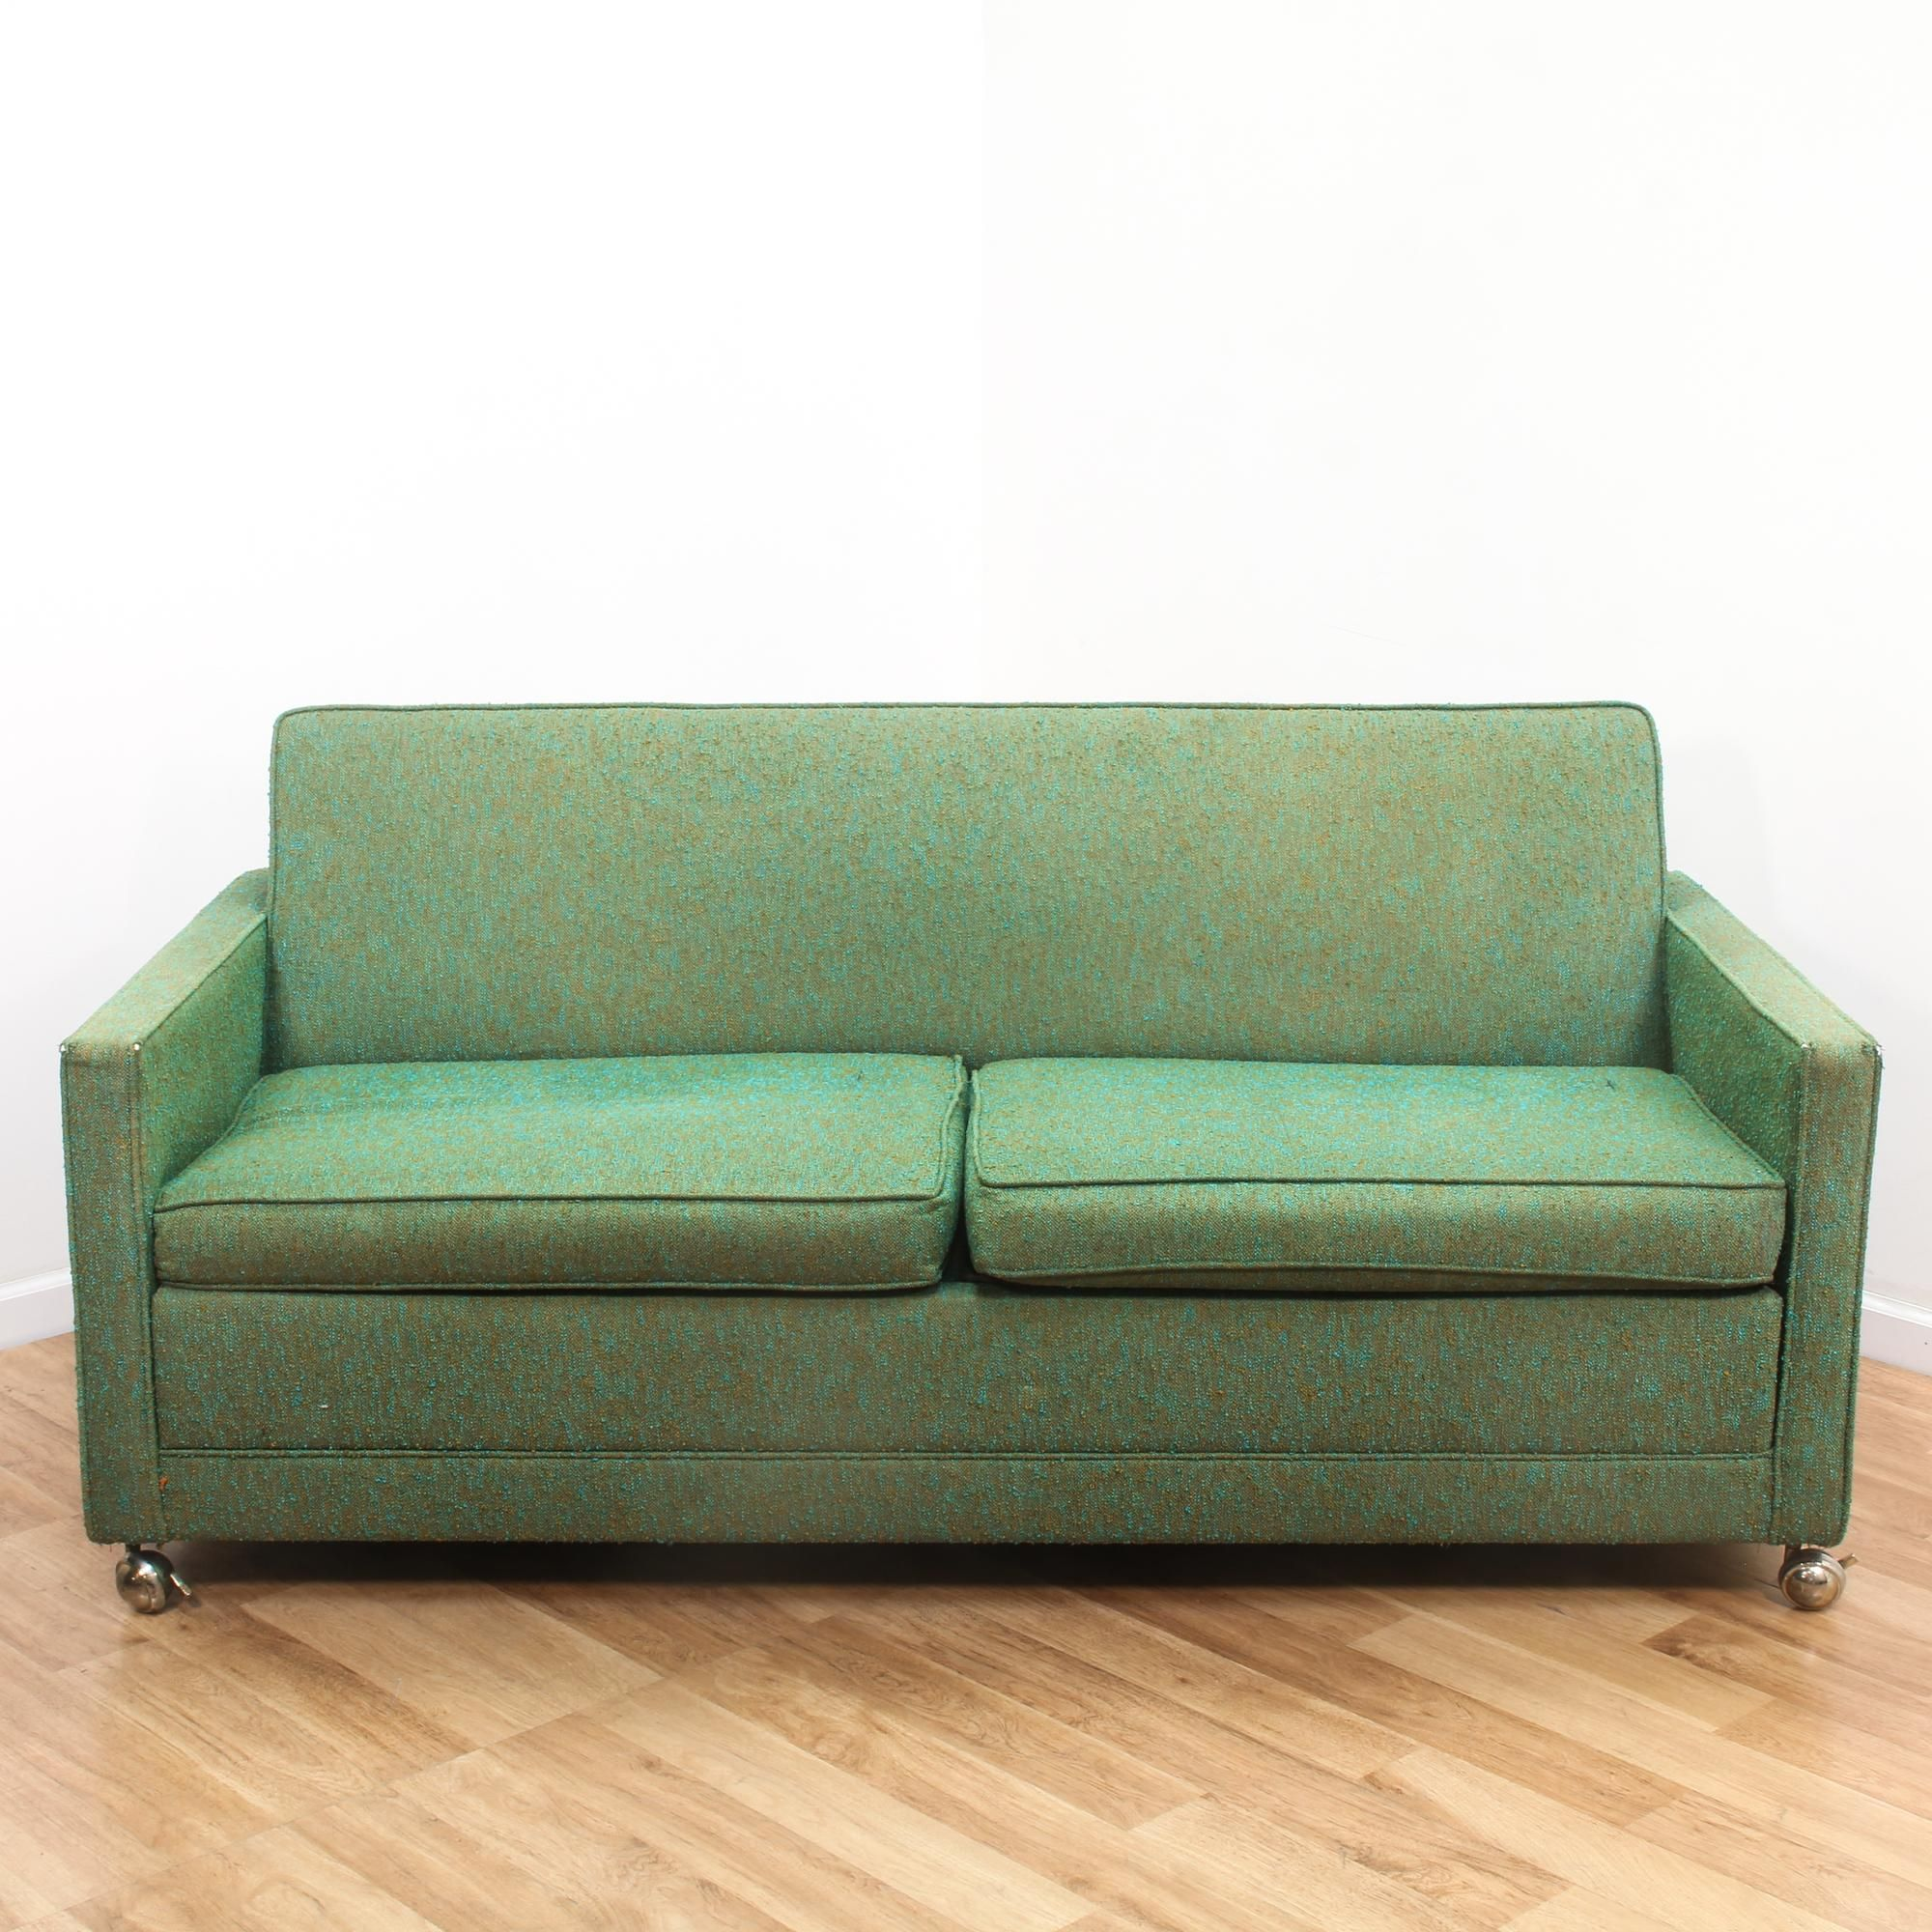 durable sofa bed canadian made this mid century modern sleeper is upholstered in a